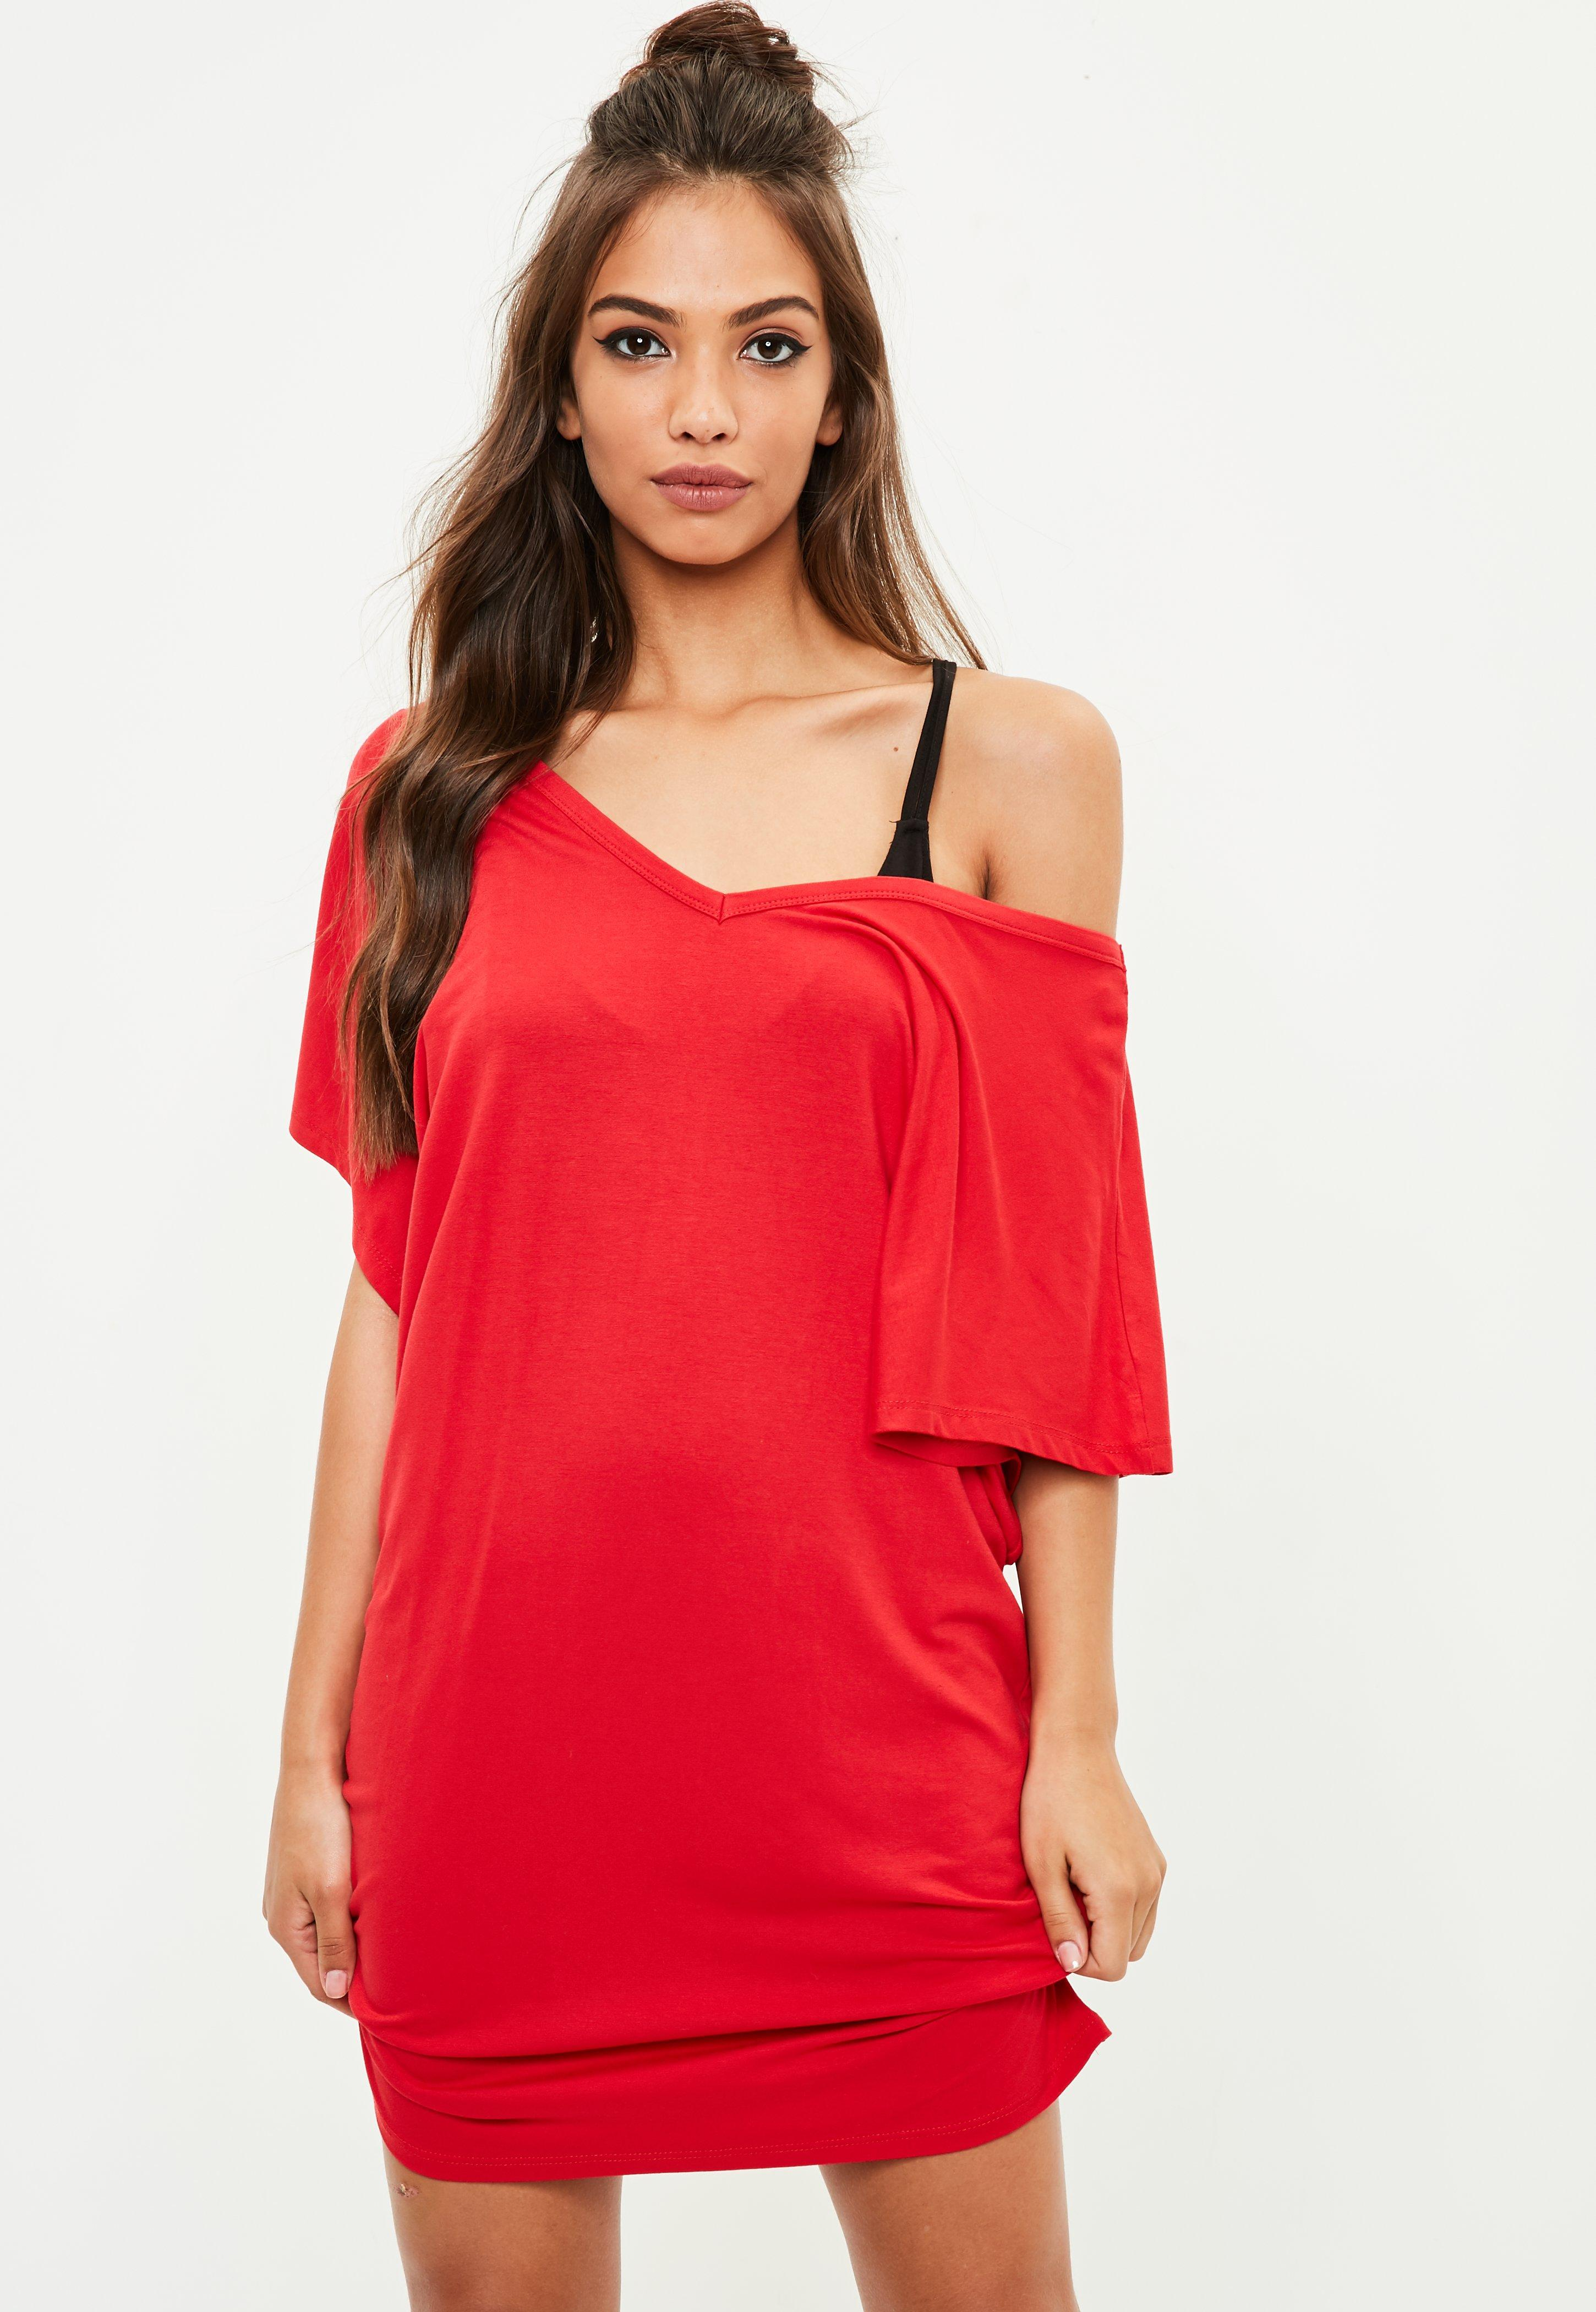 https://media.missguided.com/s/missguided/DD912559...